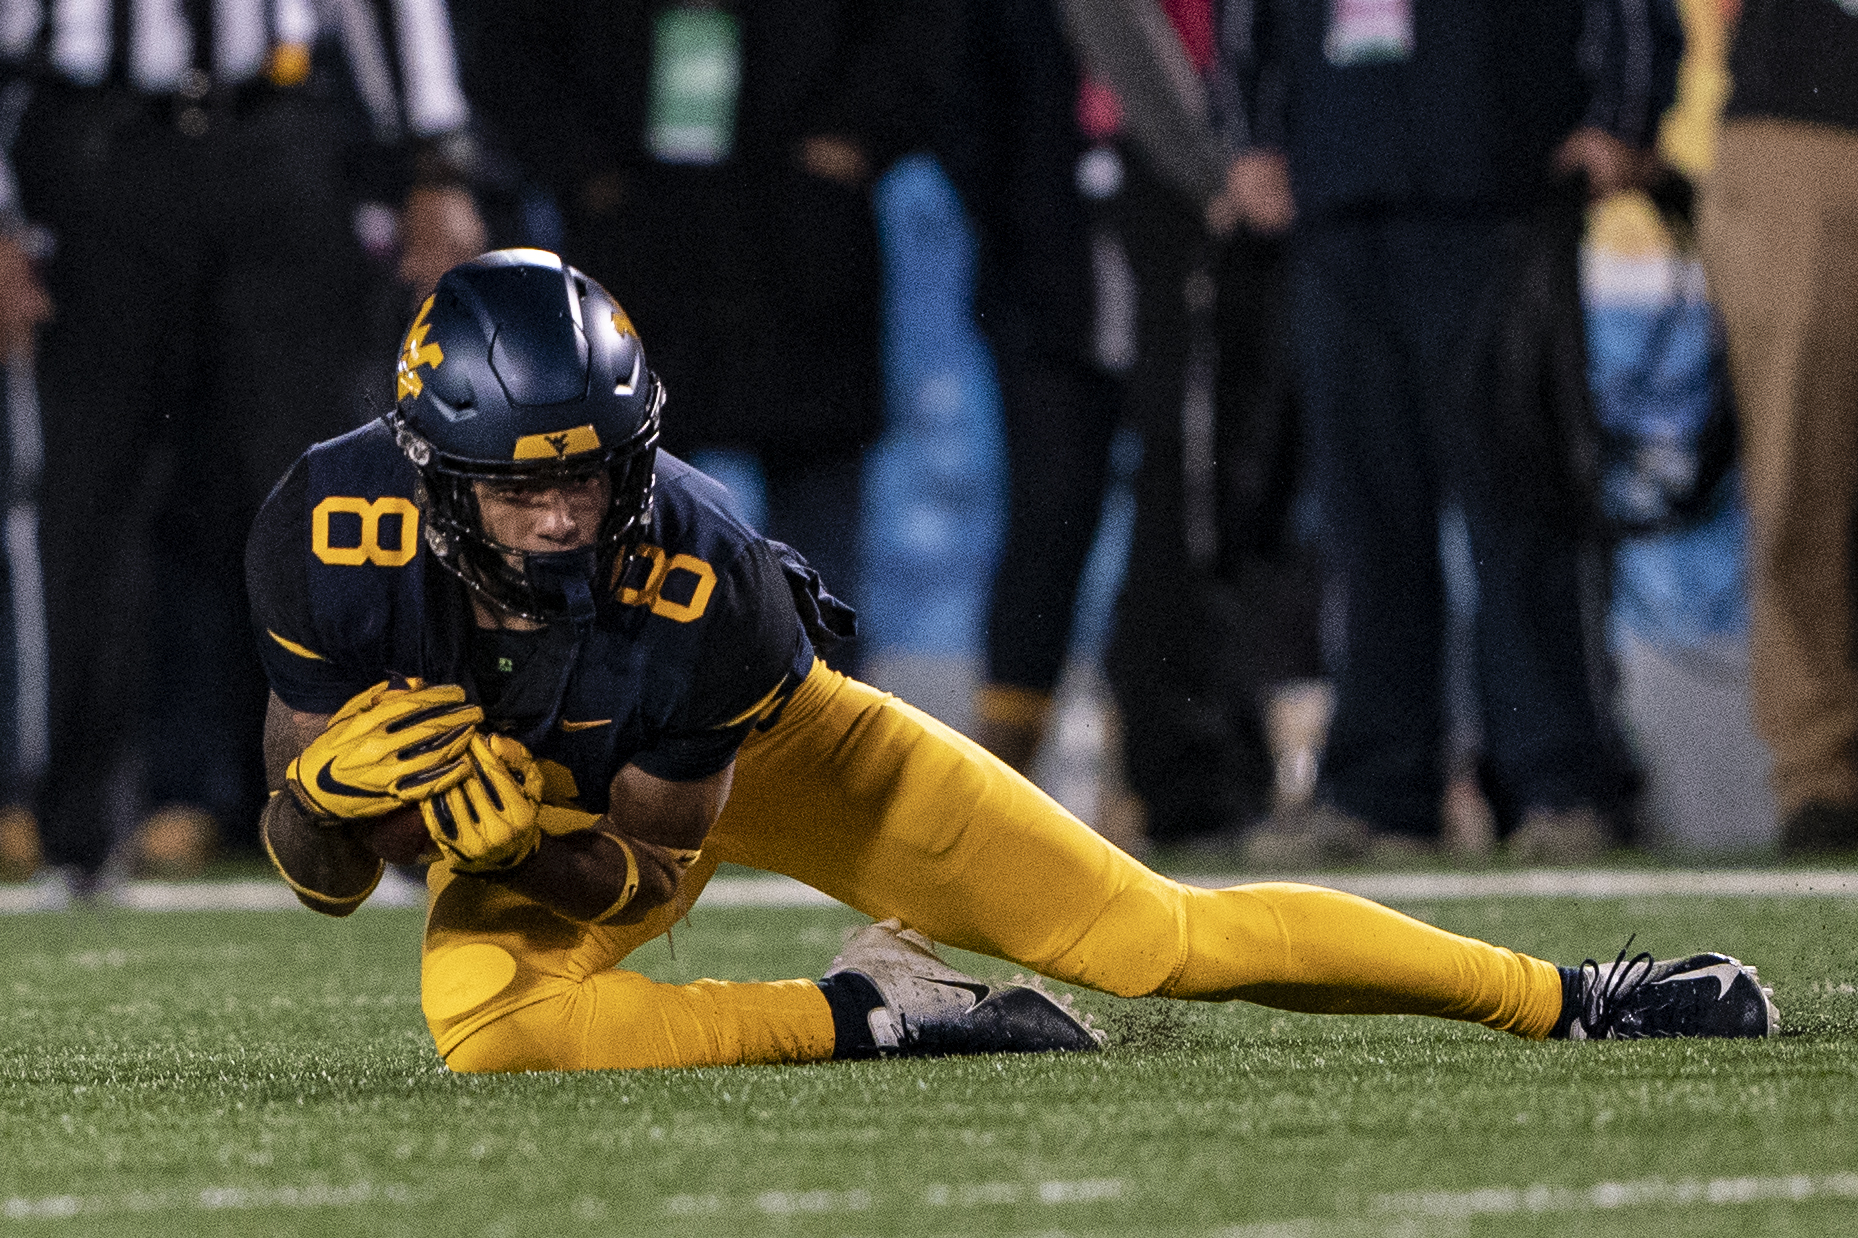 COLLEGE FOOTBALL: OCT 25 Baylor at West Virginia